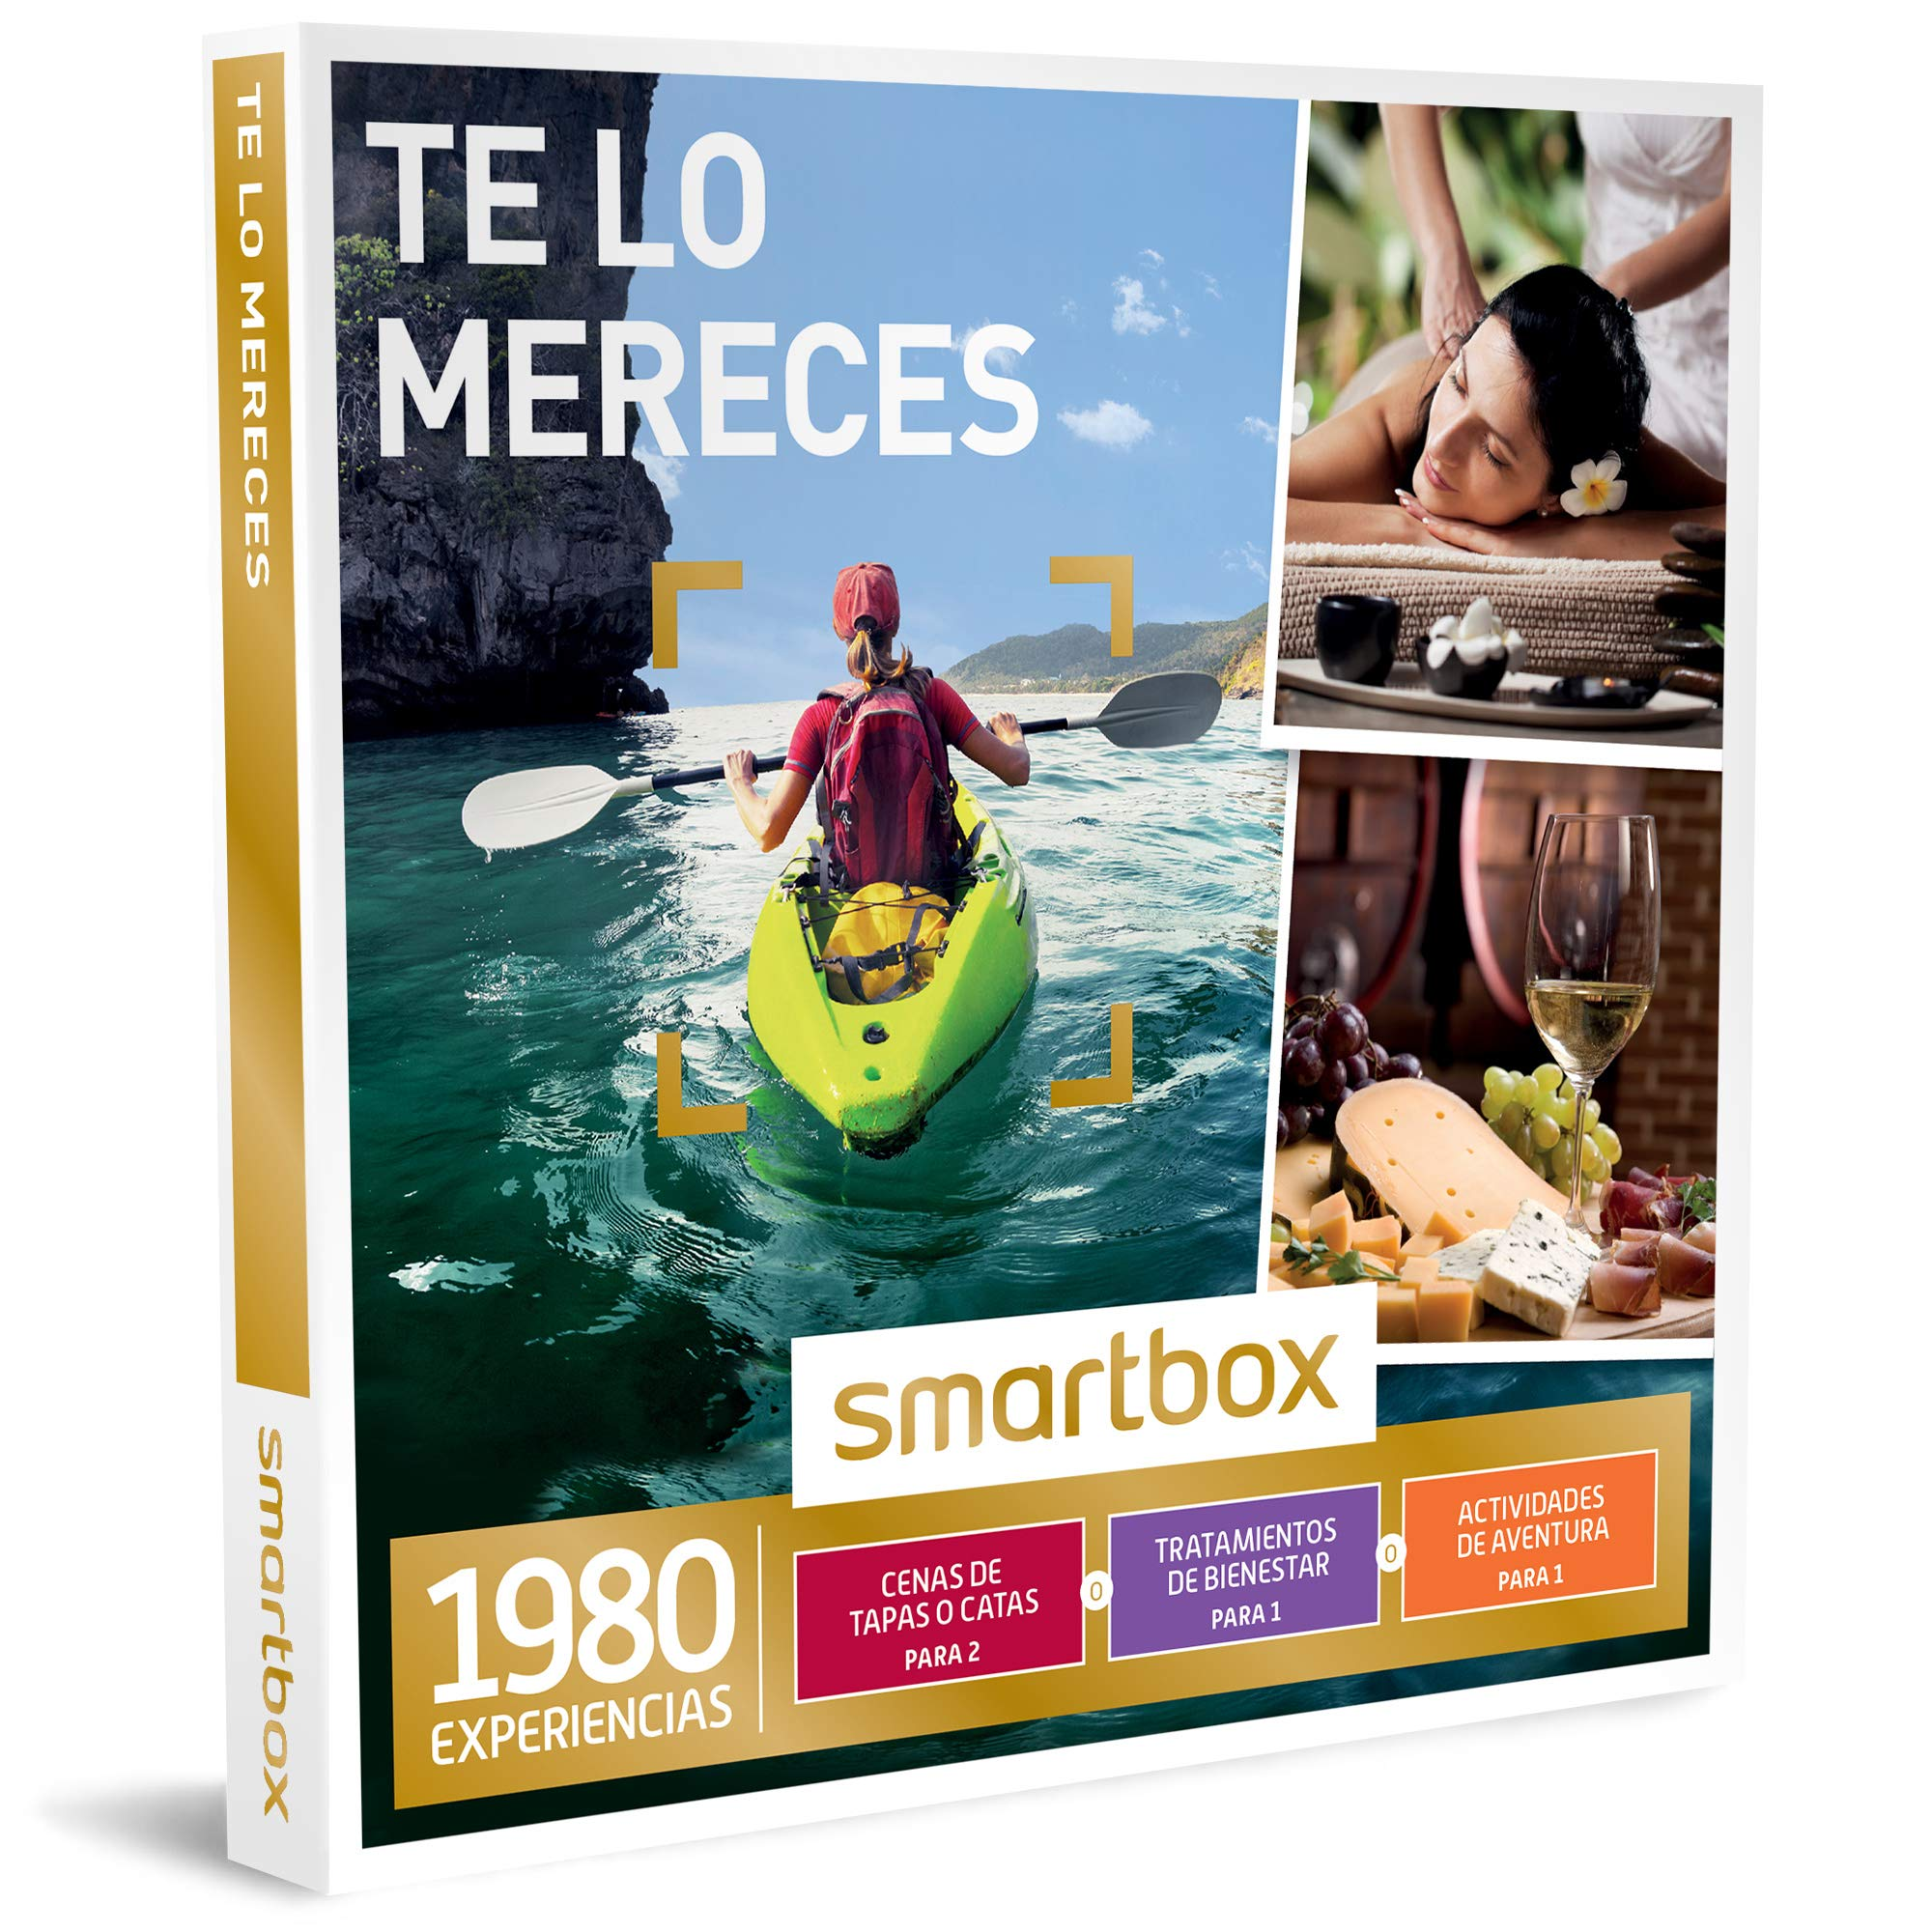 Smartbox - Caja Regalo - TE LO MERECES - 1980 experiencias ...